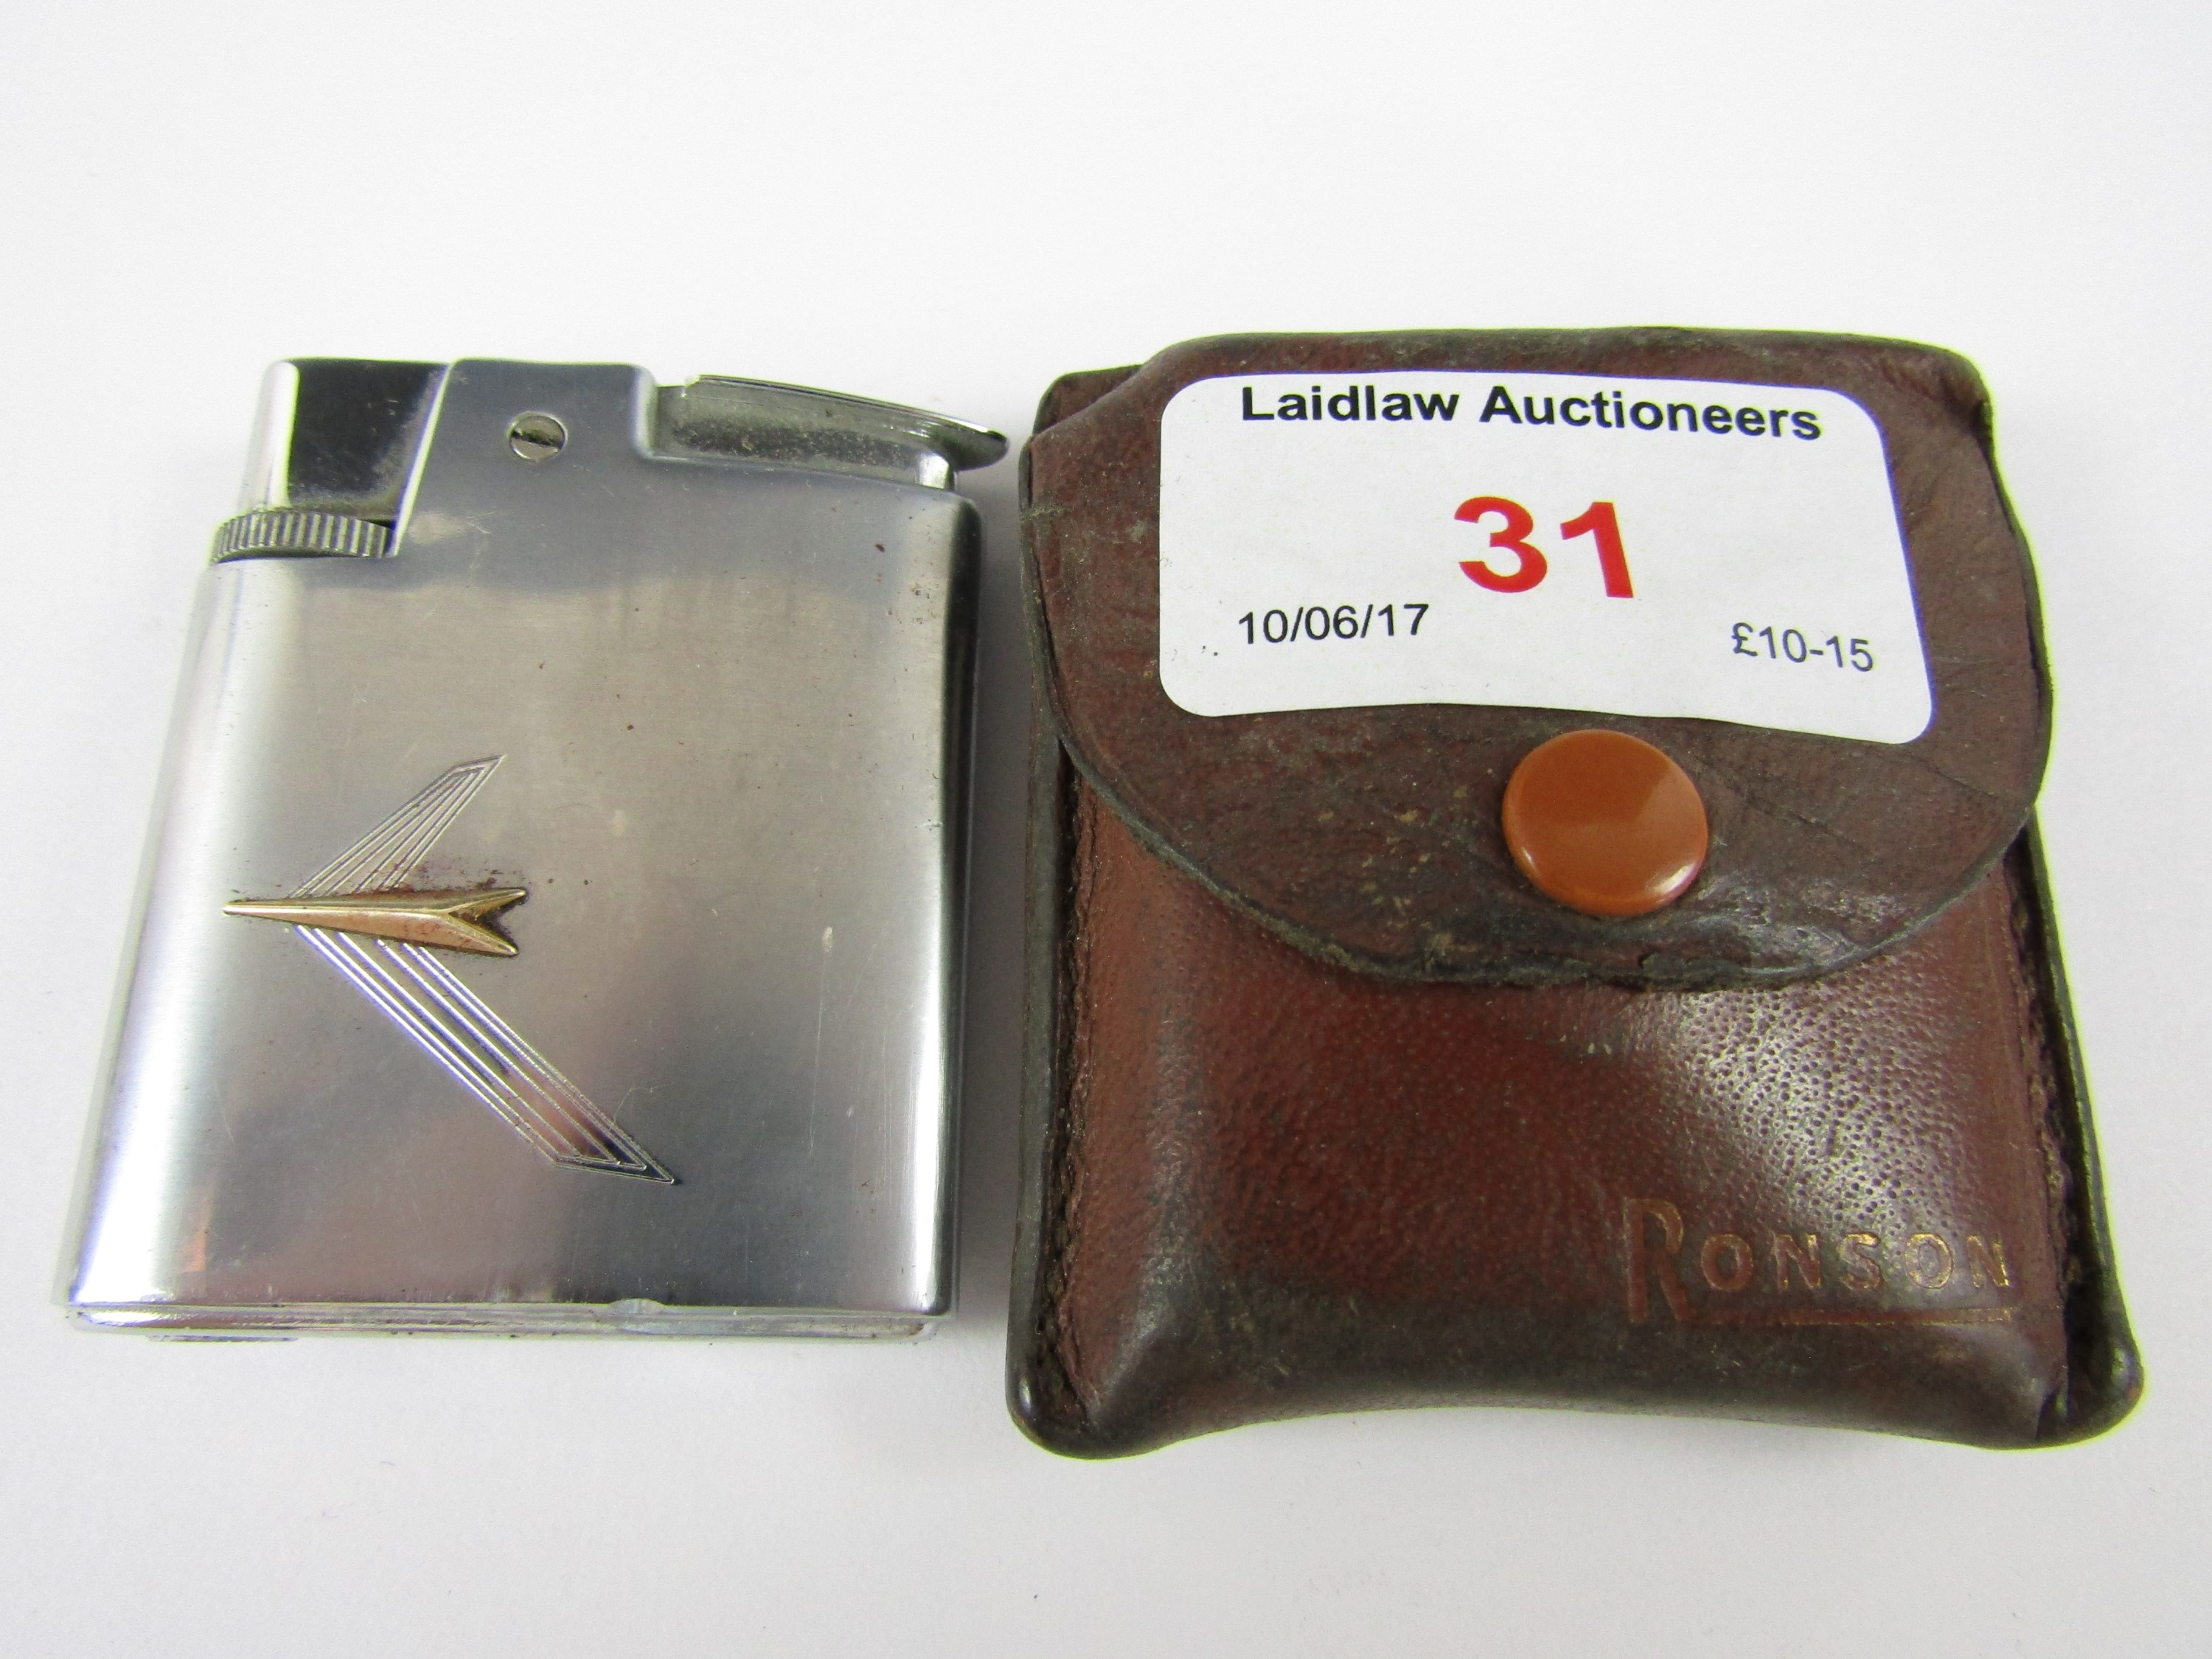 Lot 31 - A 1950's Ronson stainless steel cigarette lighter and leather case